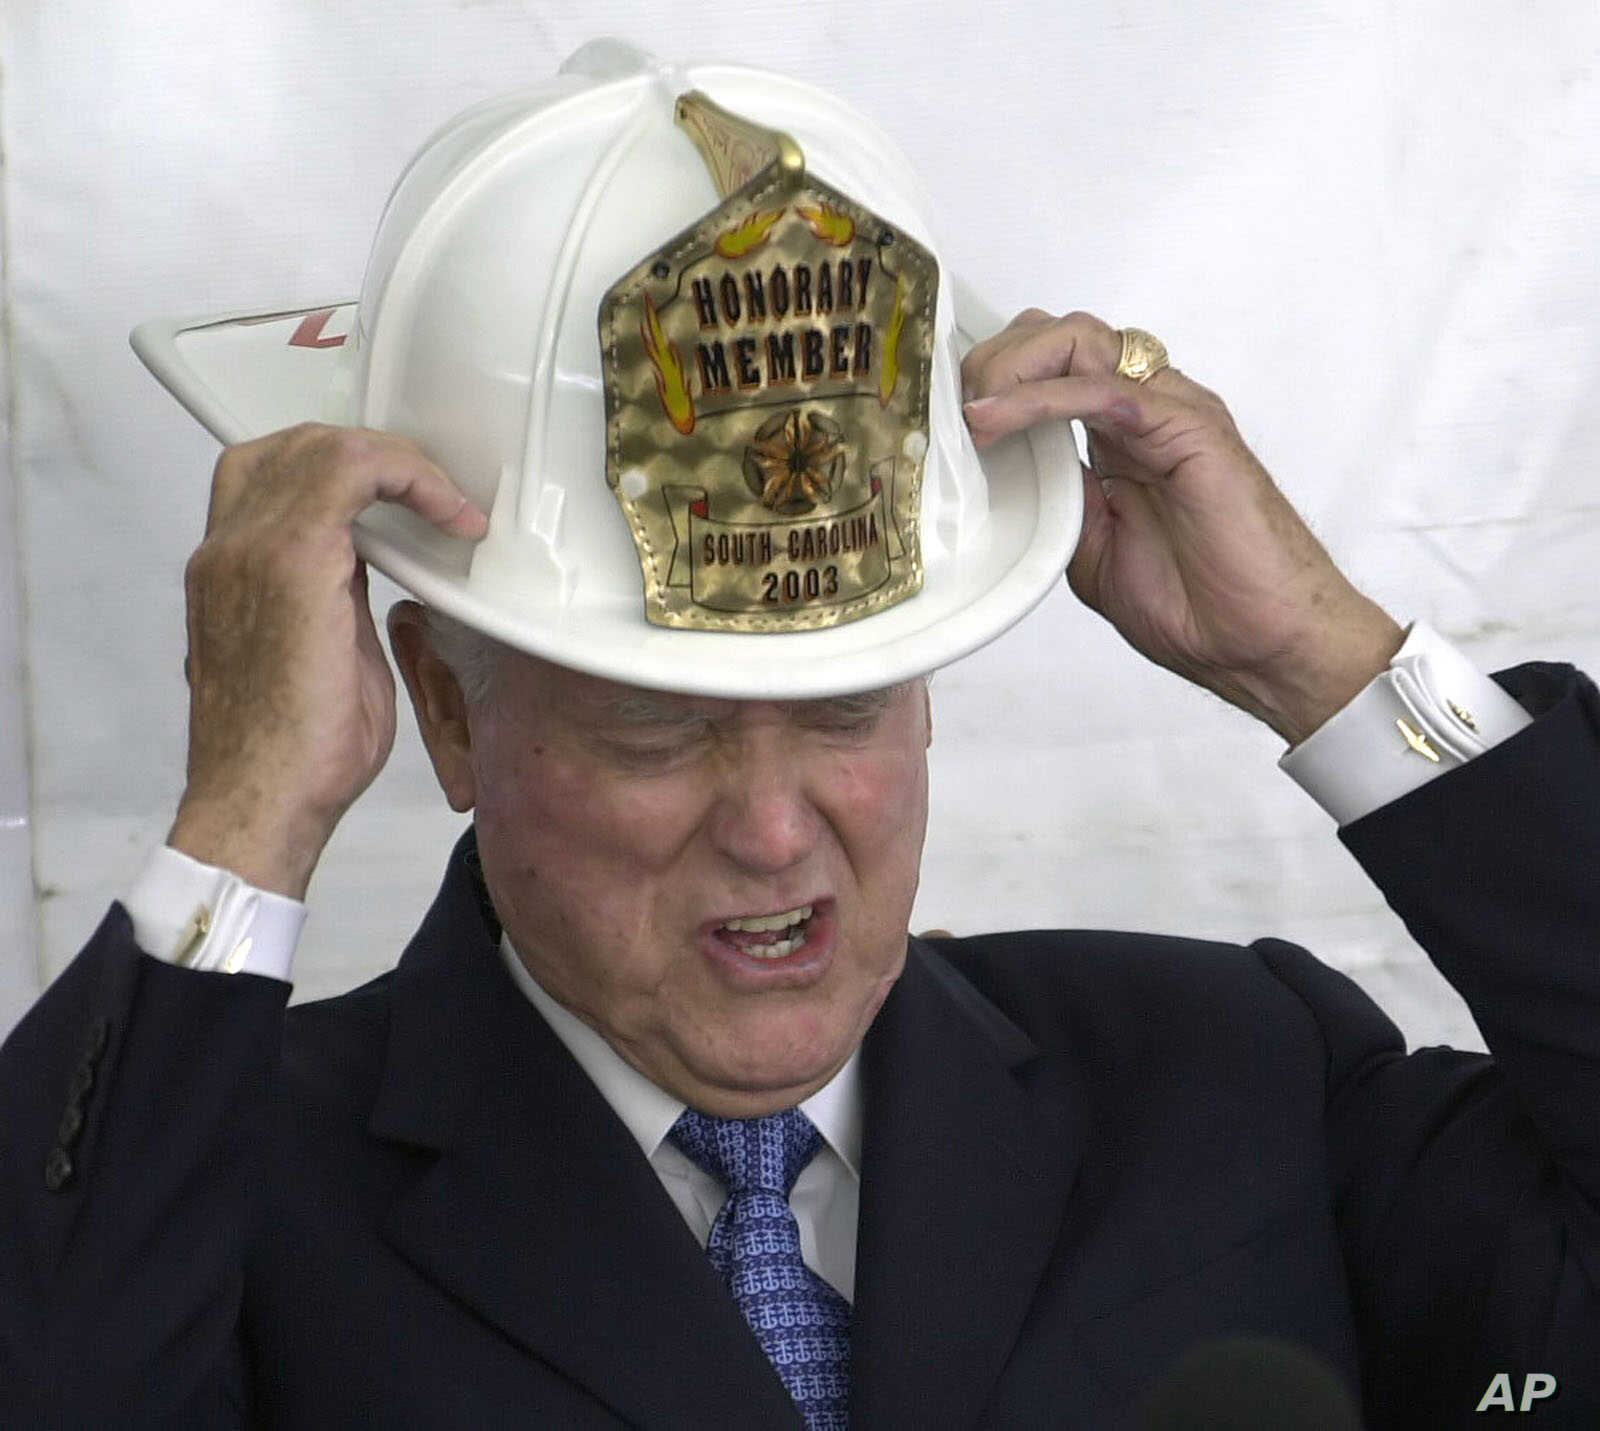 FILE - Sen. Ernest Hollings, D-S.C., puts on a firefighter helmet after he was awarded an honorary membership in the South Carolina Firemen's Association during a luncheon April 22, 2003, in Columbia, S.C.